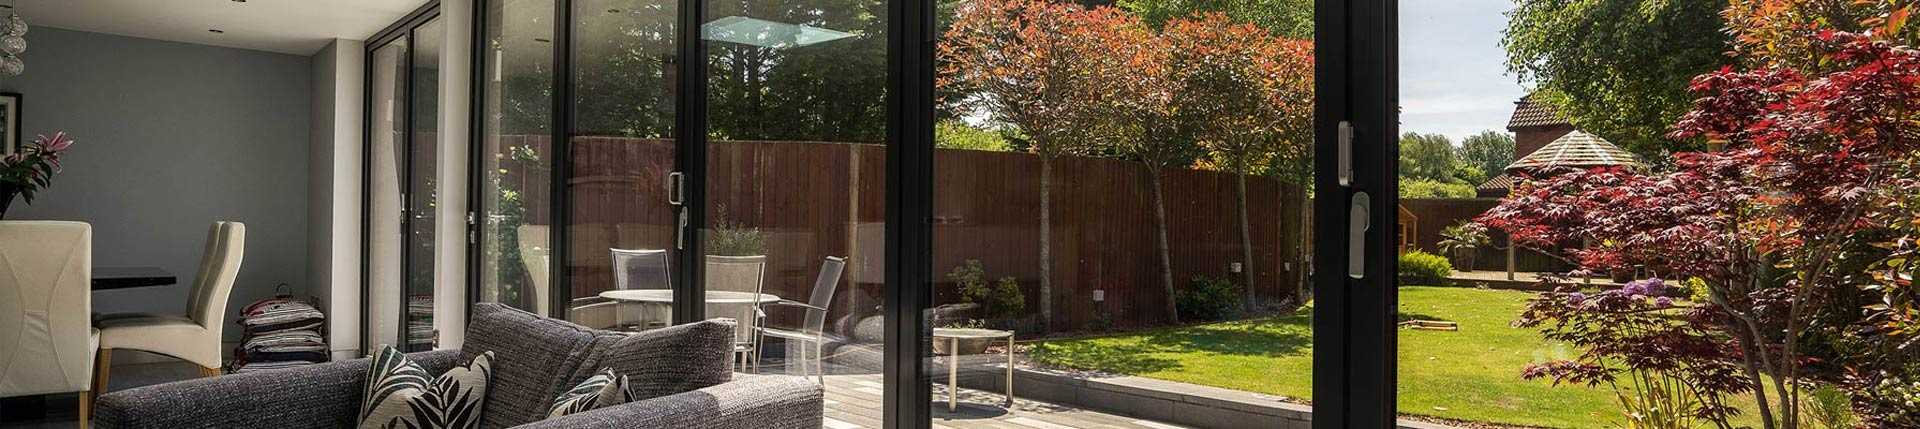 Bifold doors installed in Hoylake, Wirral